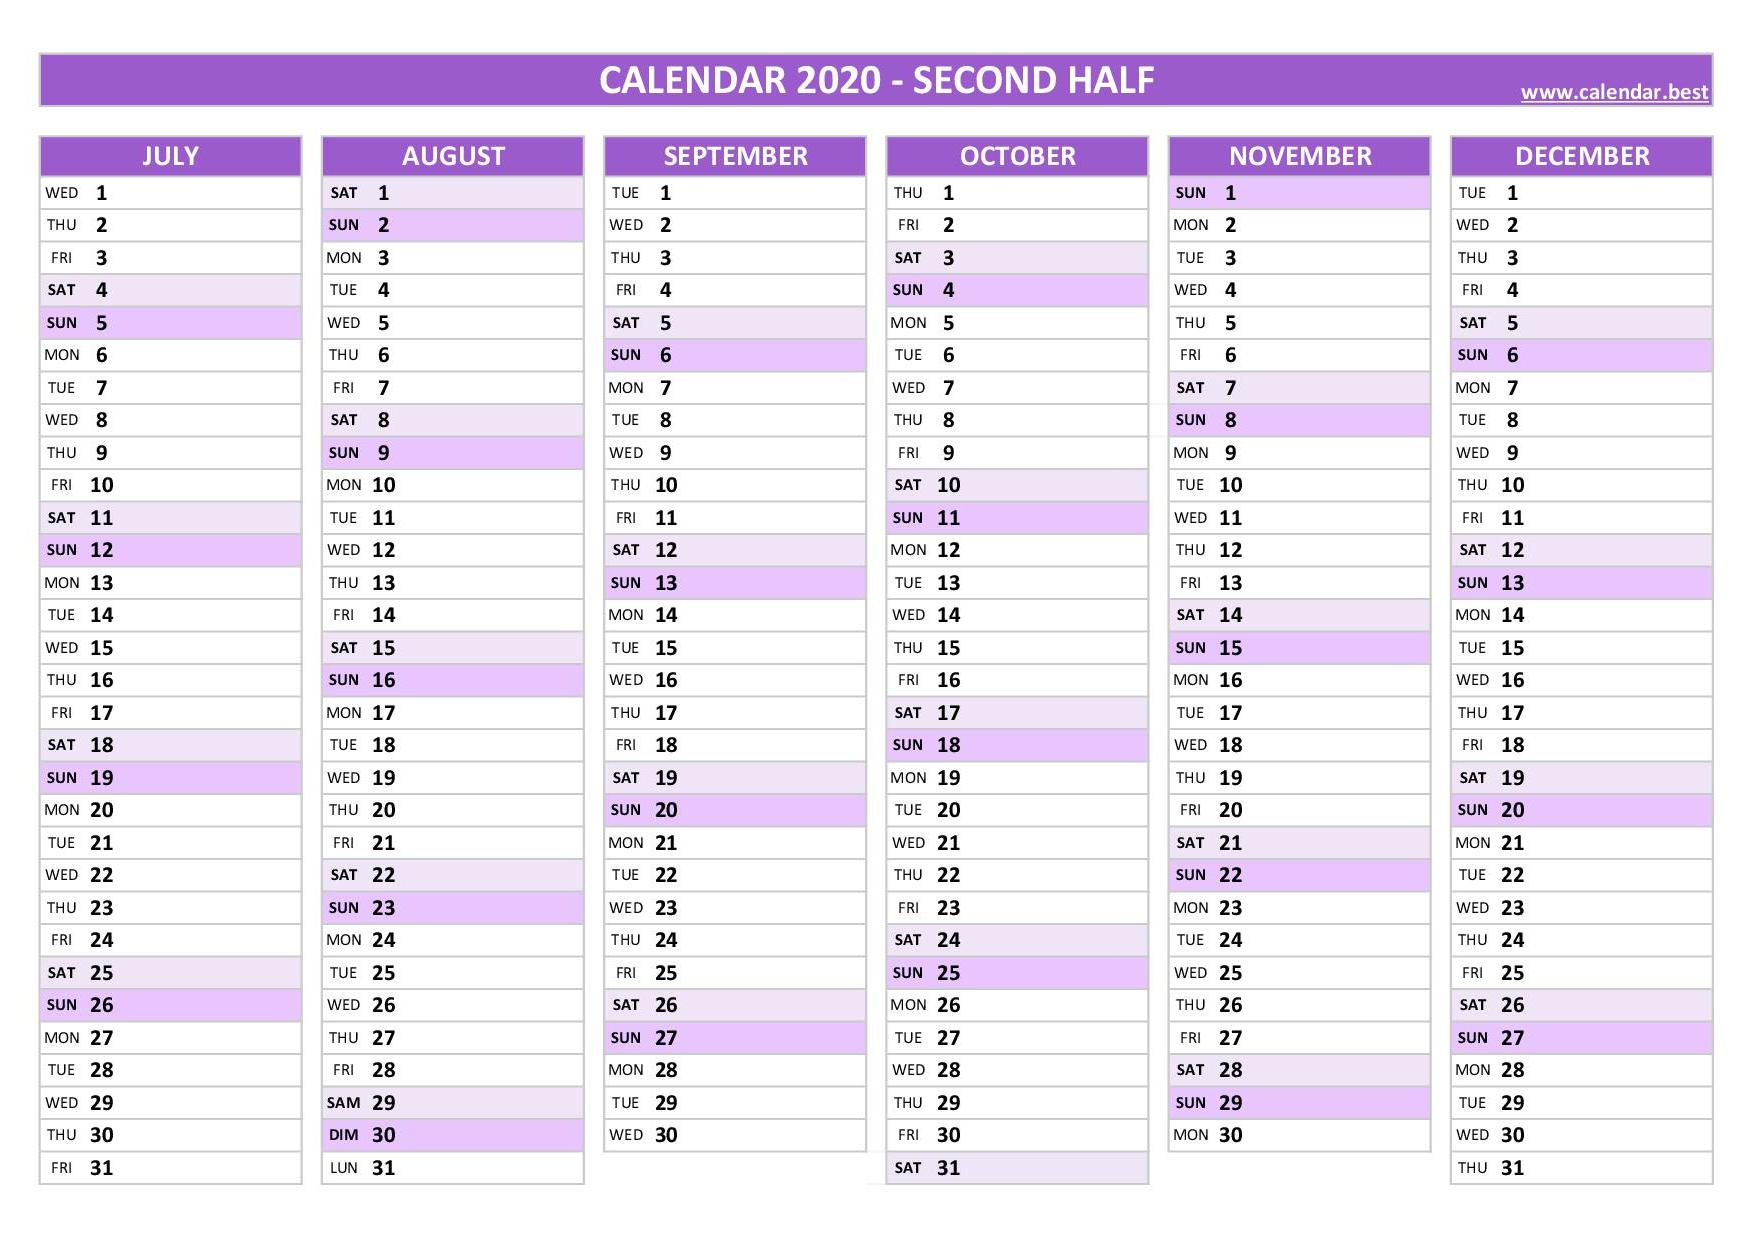 2020 Calendar  Calendar.best intended for Calendars With Time Slots